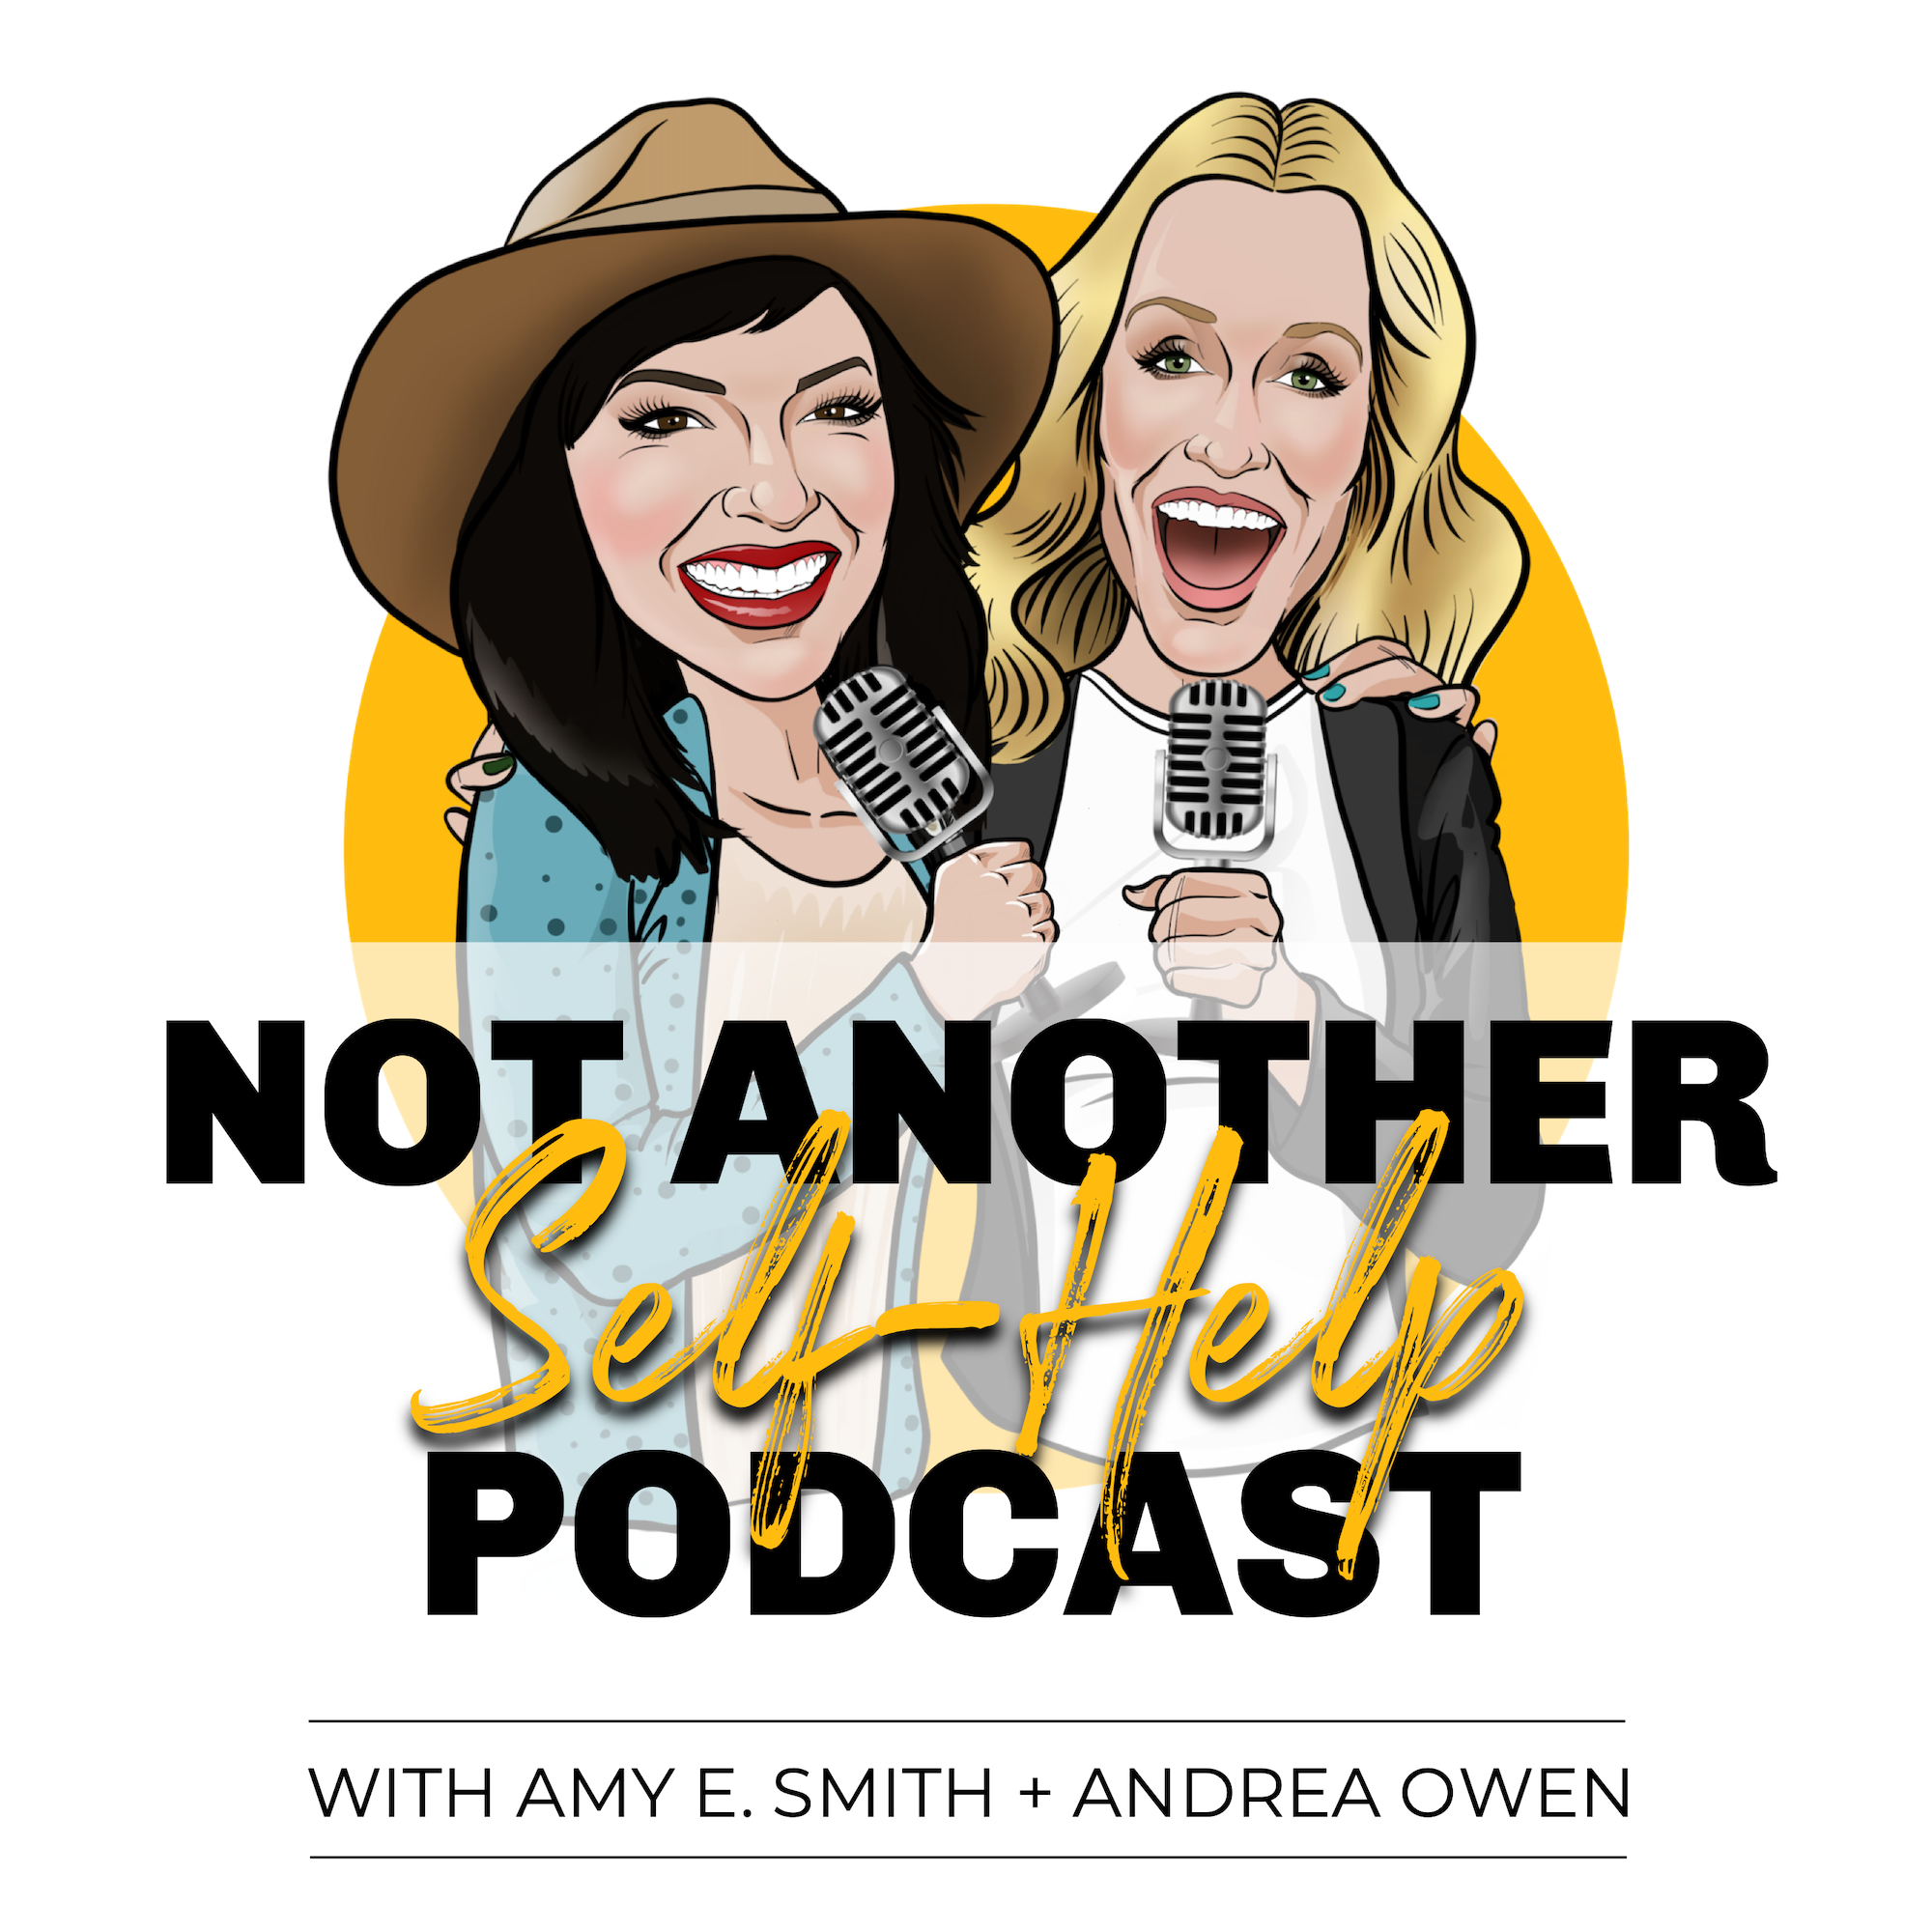 Not Another Self-Help Podcast show art